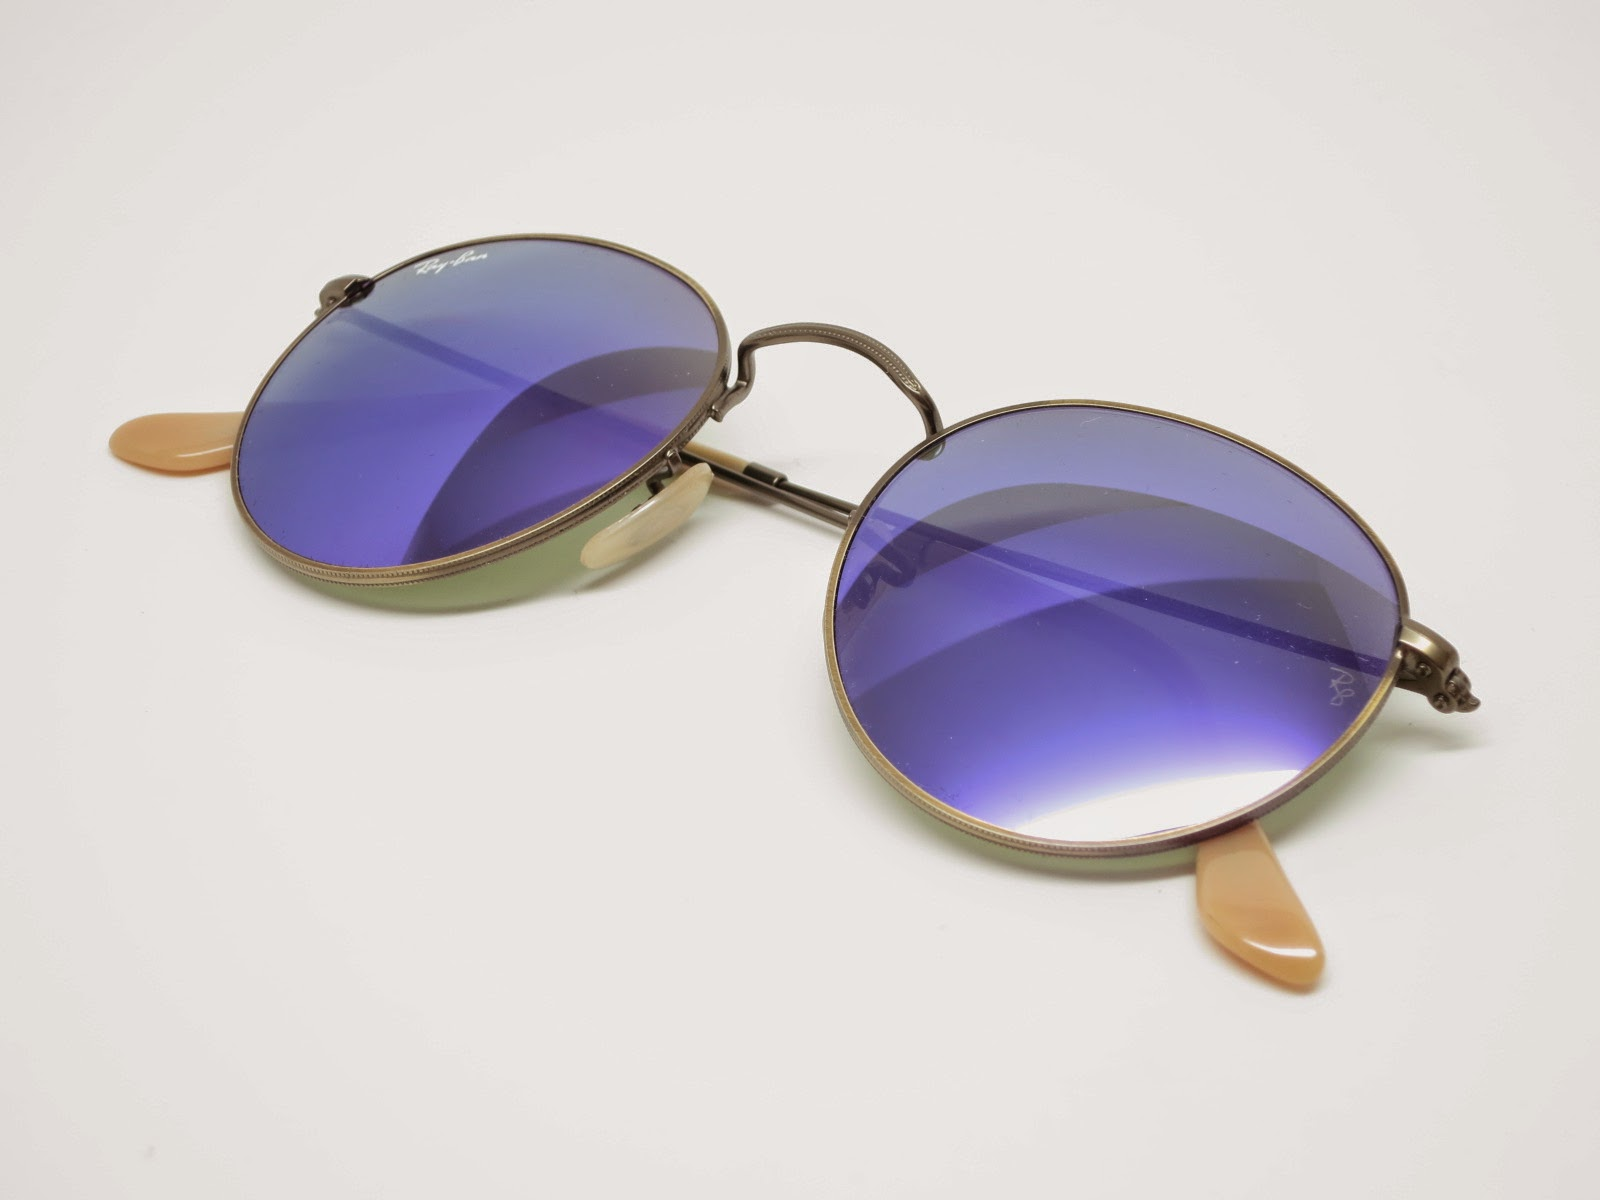 ae93064d74 Ray-Ban RB 3447 Round Metal 167 1M Violet Mirrored Sunglasses